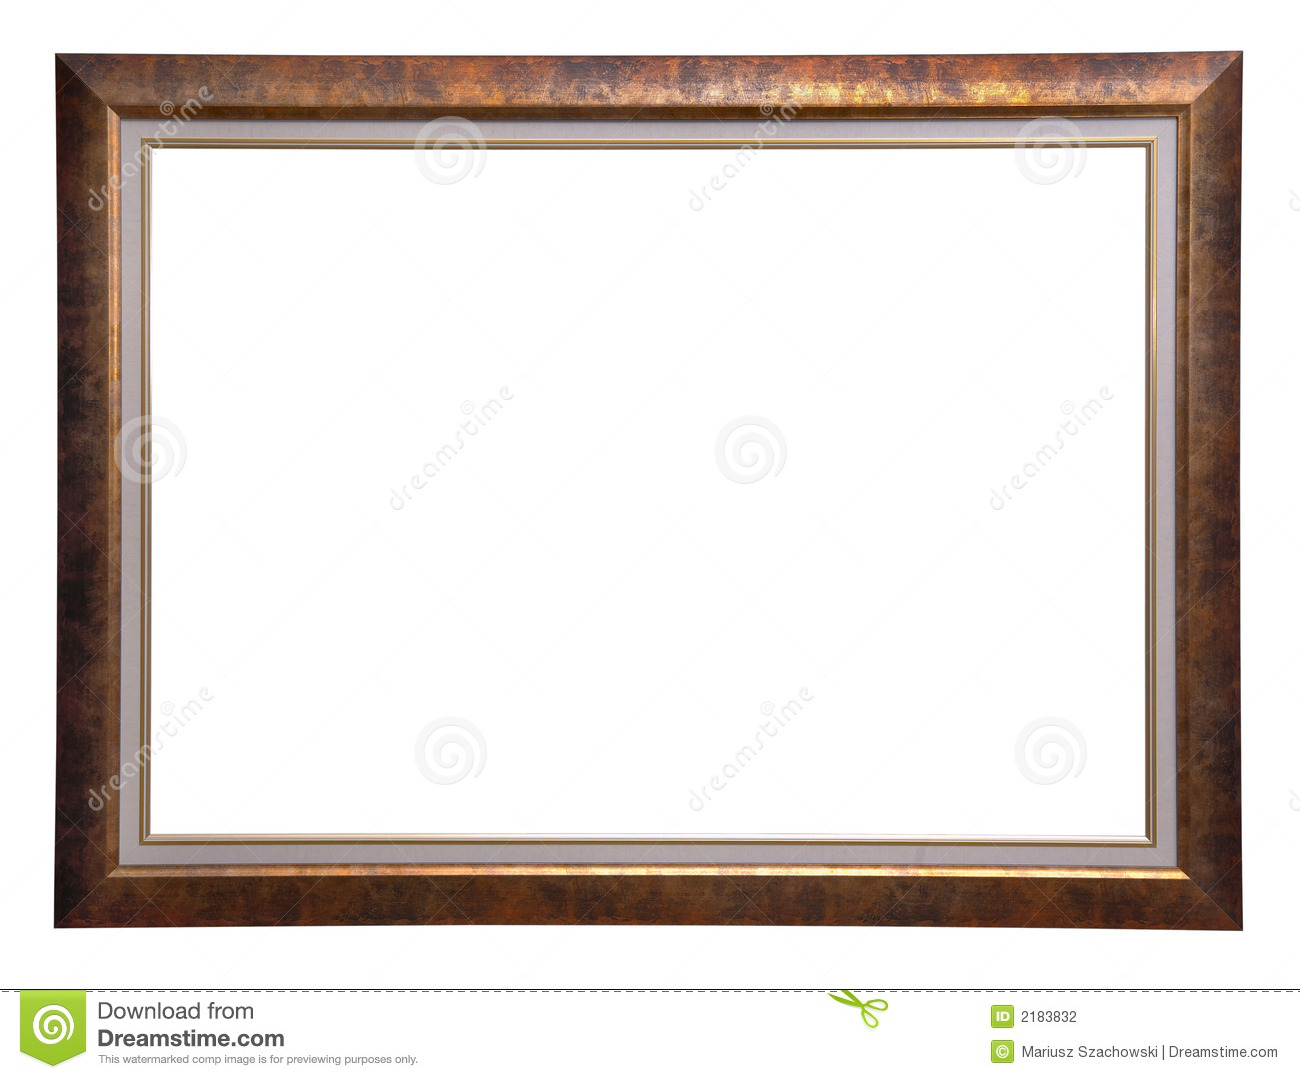 Antique golden wooden frame isolated on white background.